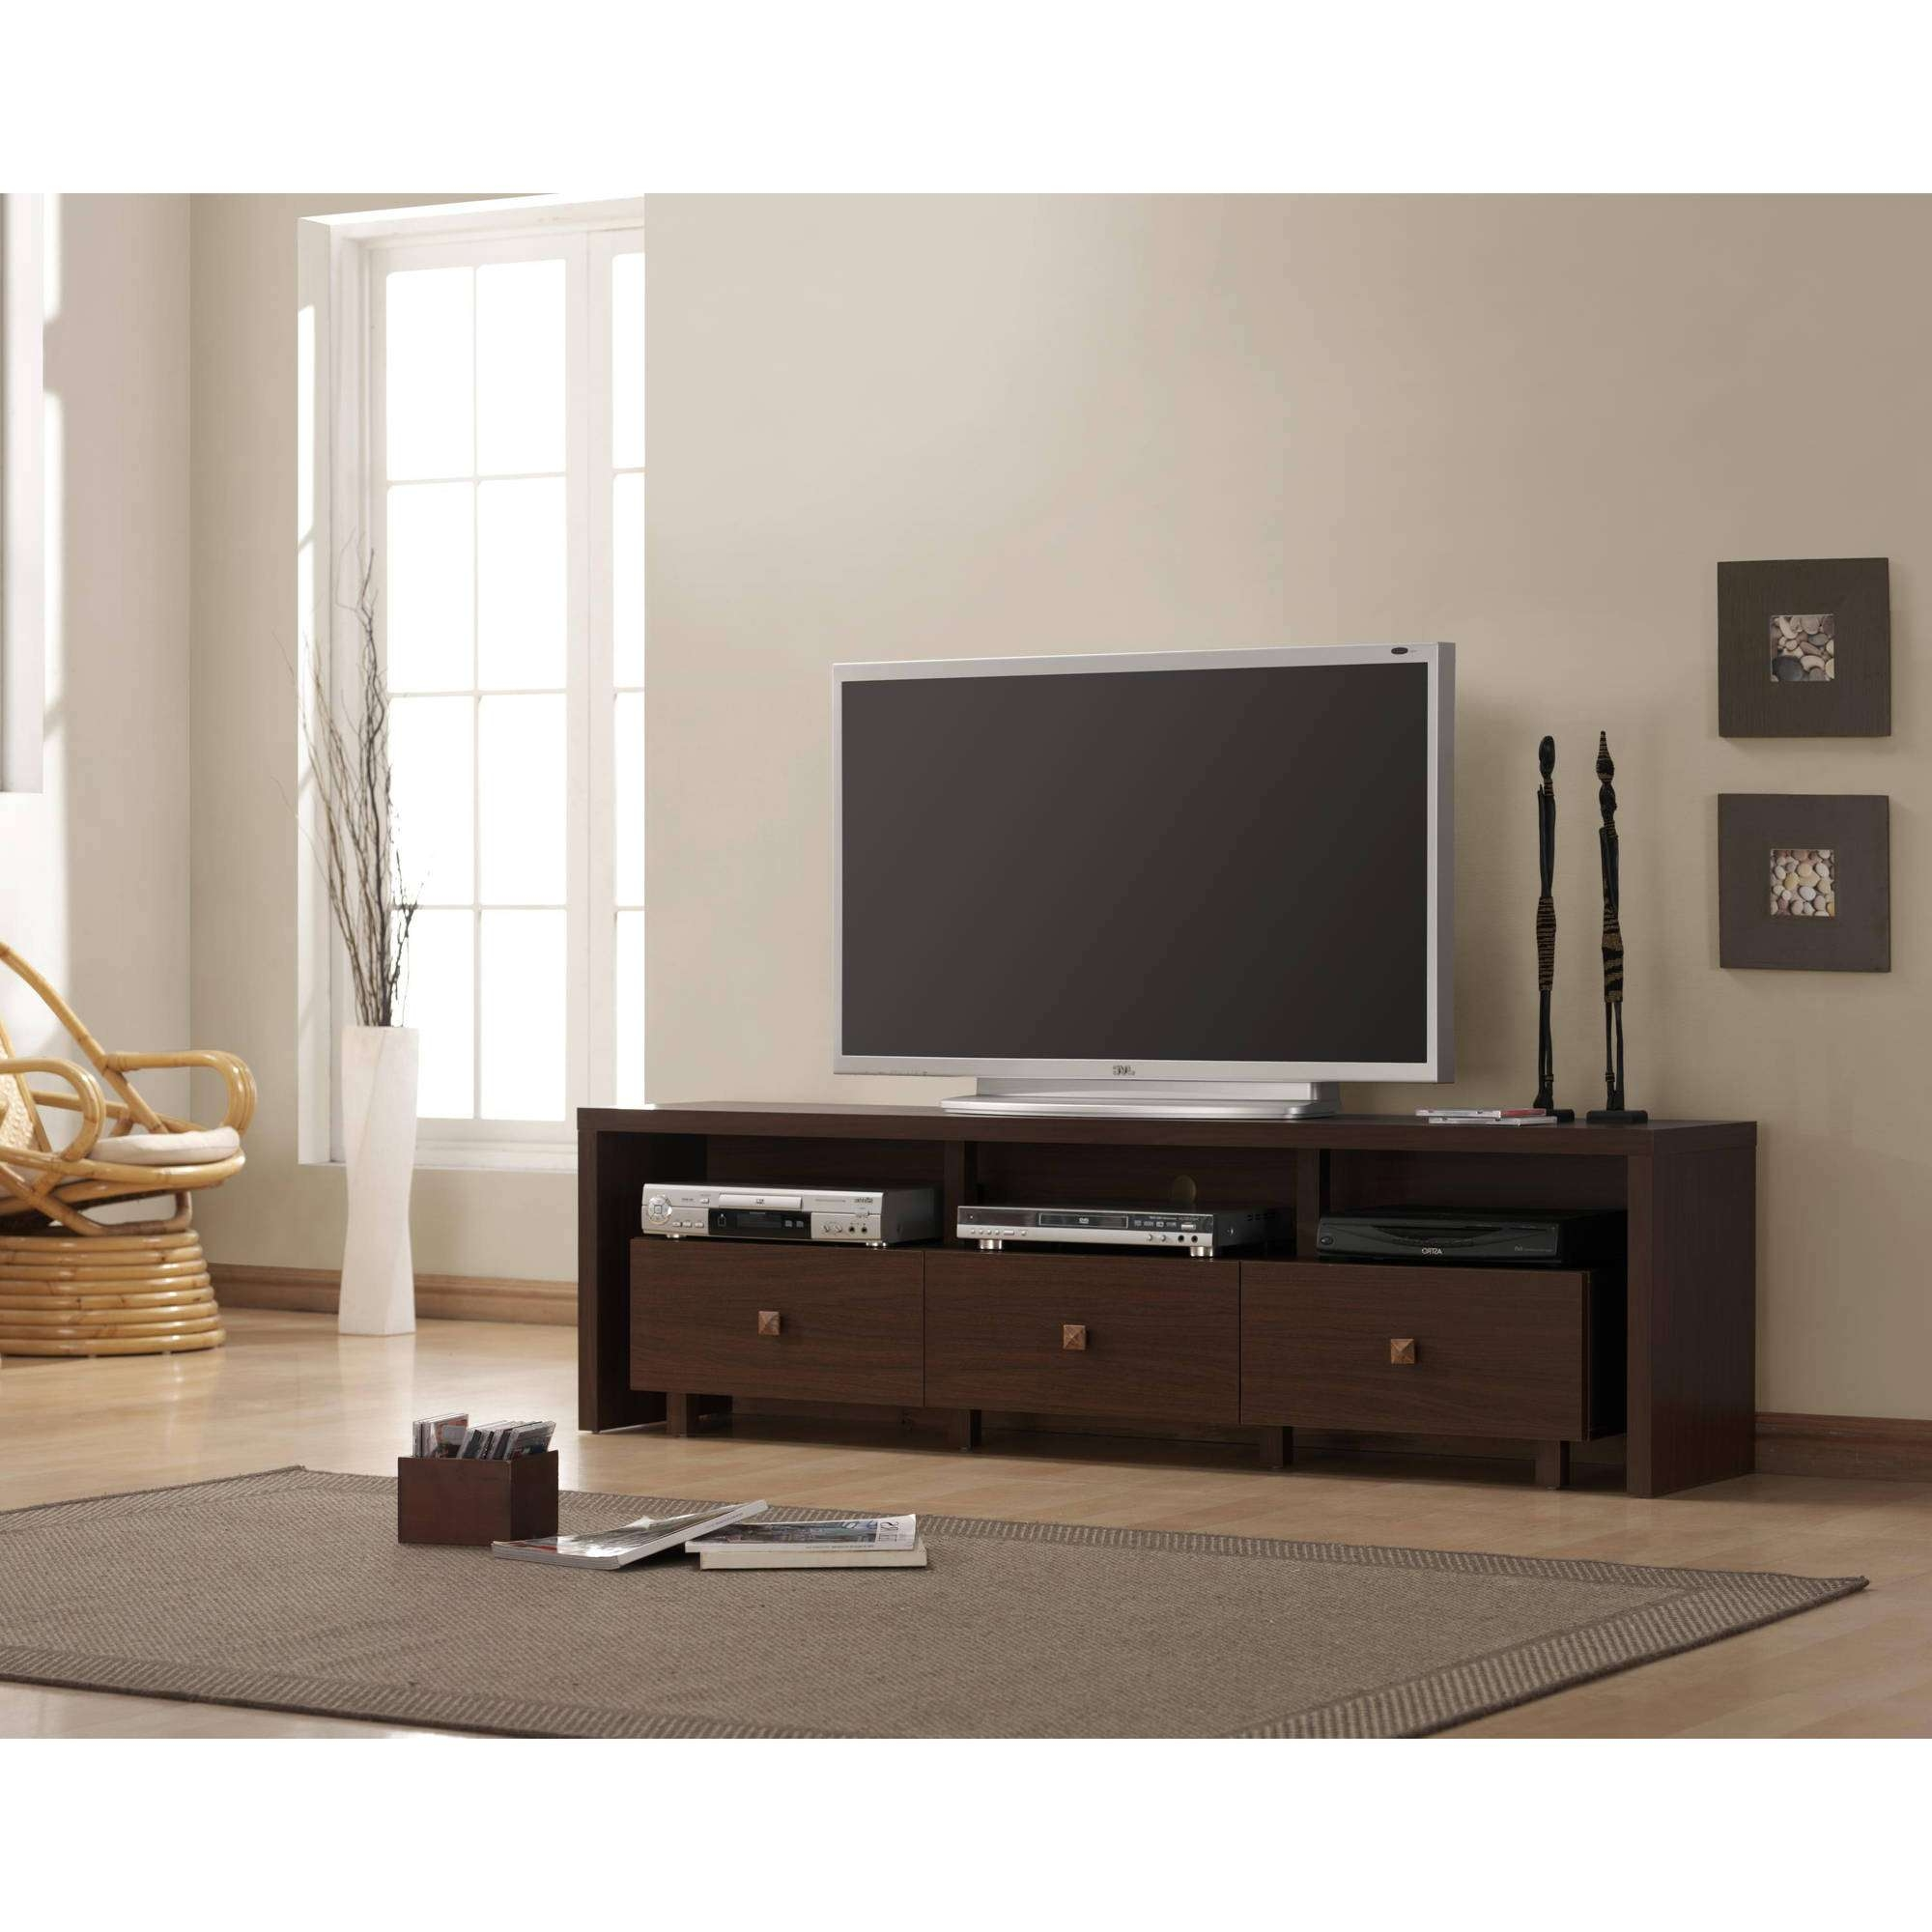 Dainty Tv Stand Entertainment Console Then Shelves Tv Stand Grey Intended For Long Tv Cabinets Furniture (View 9 of 20)